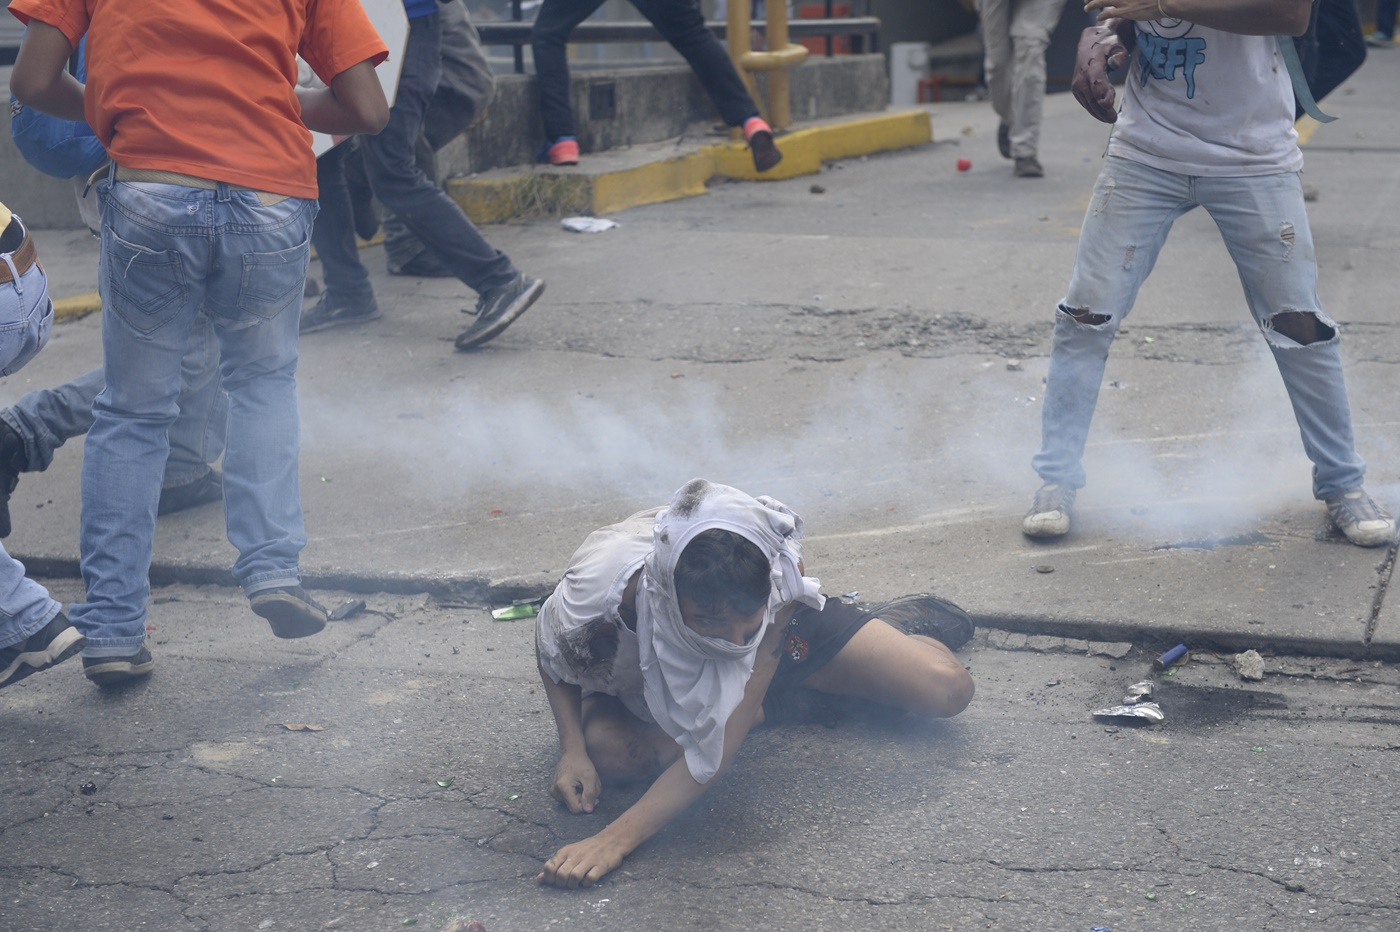 An opposition demonstrator ran over by a National Guard control vehicle tries to sit up during a protest against Venezuelan President Nicolas Maduro, in Caracas on May 3, 2017. Venezuela's angry opposition rallied Wednesday vowing huge street protests against President Nicolas Maduro's plan to rewrite the constitution and accusing him of dodging elections to cling to power despite deadly unrest. / AFP PHOTO / FEDERICO PARRA / GRAPHIC CONTENT